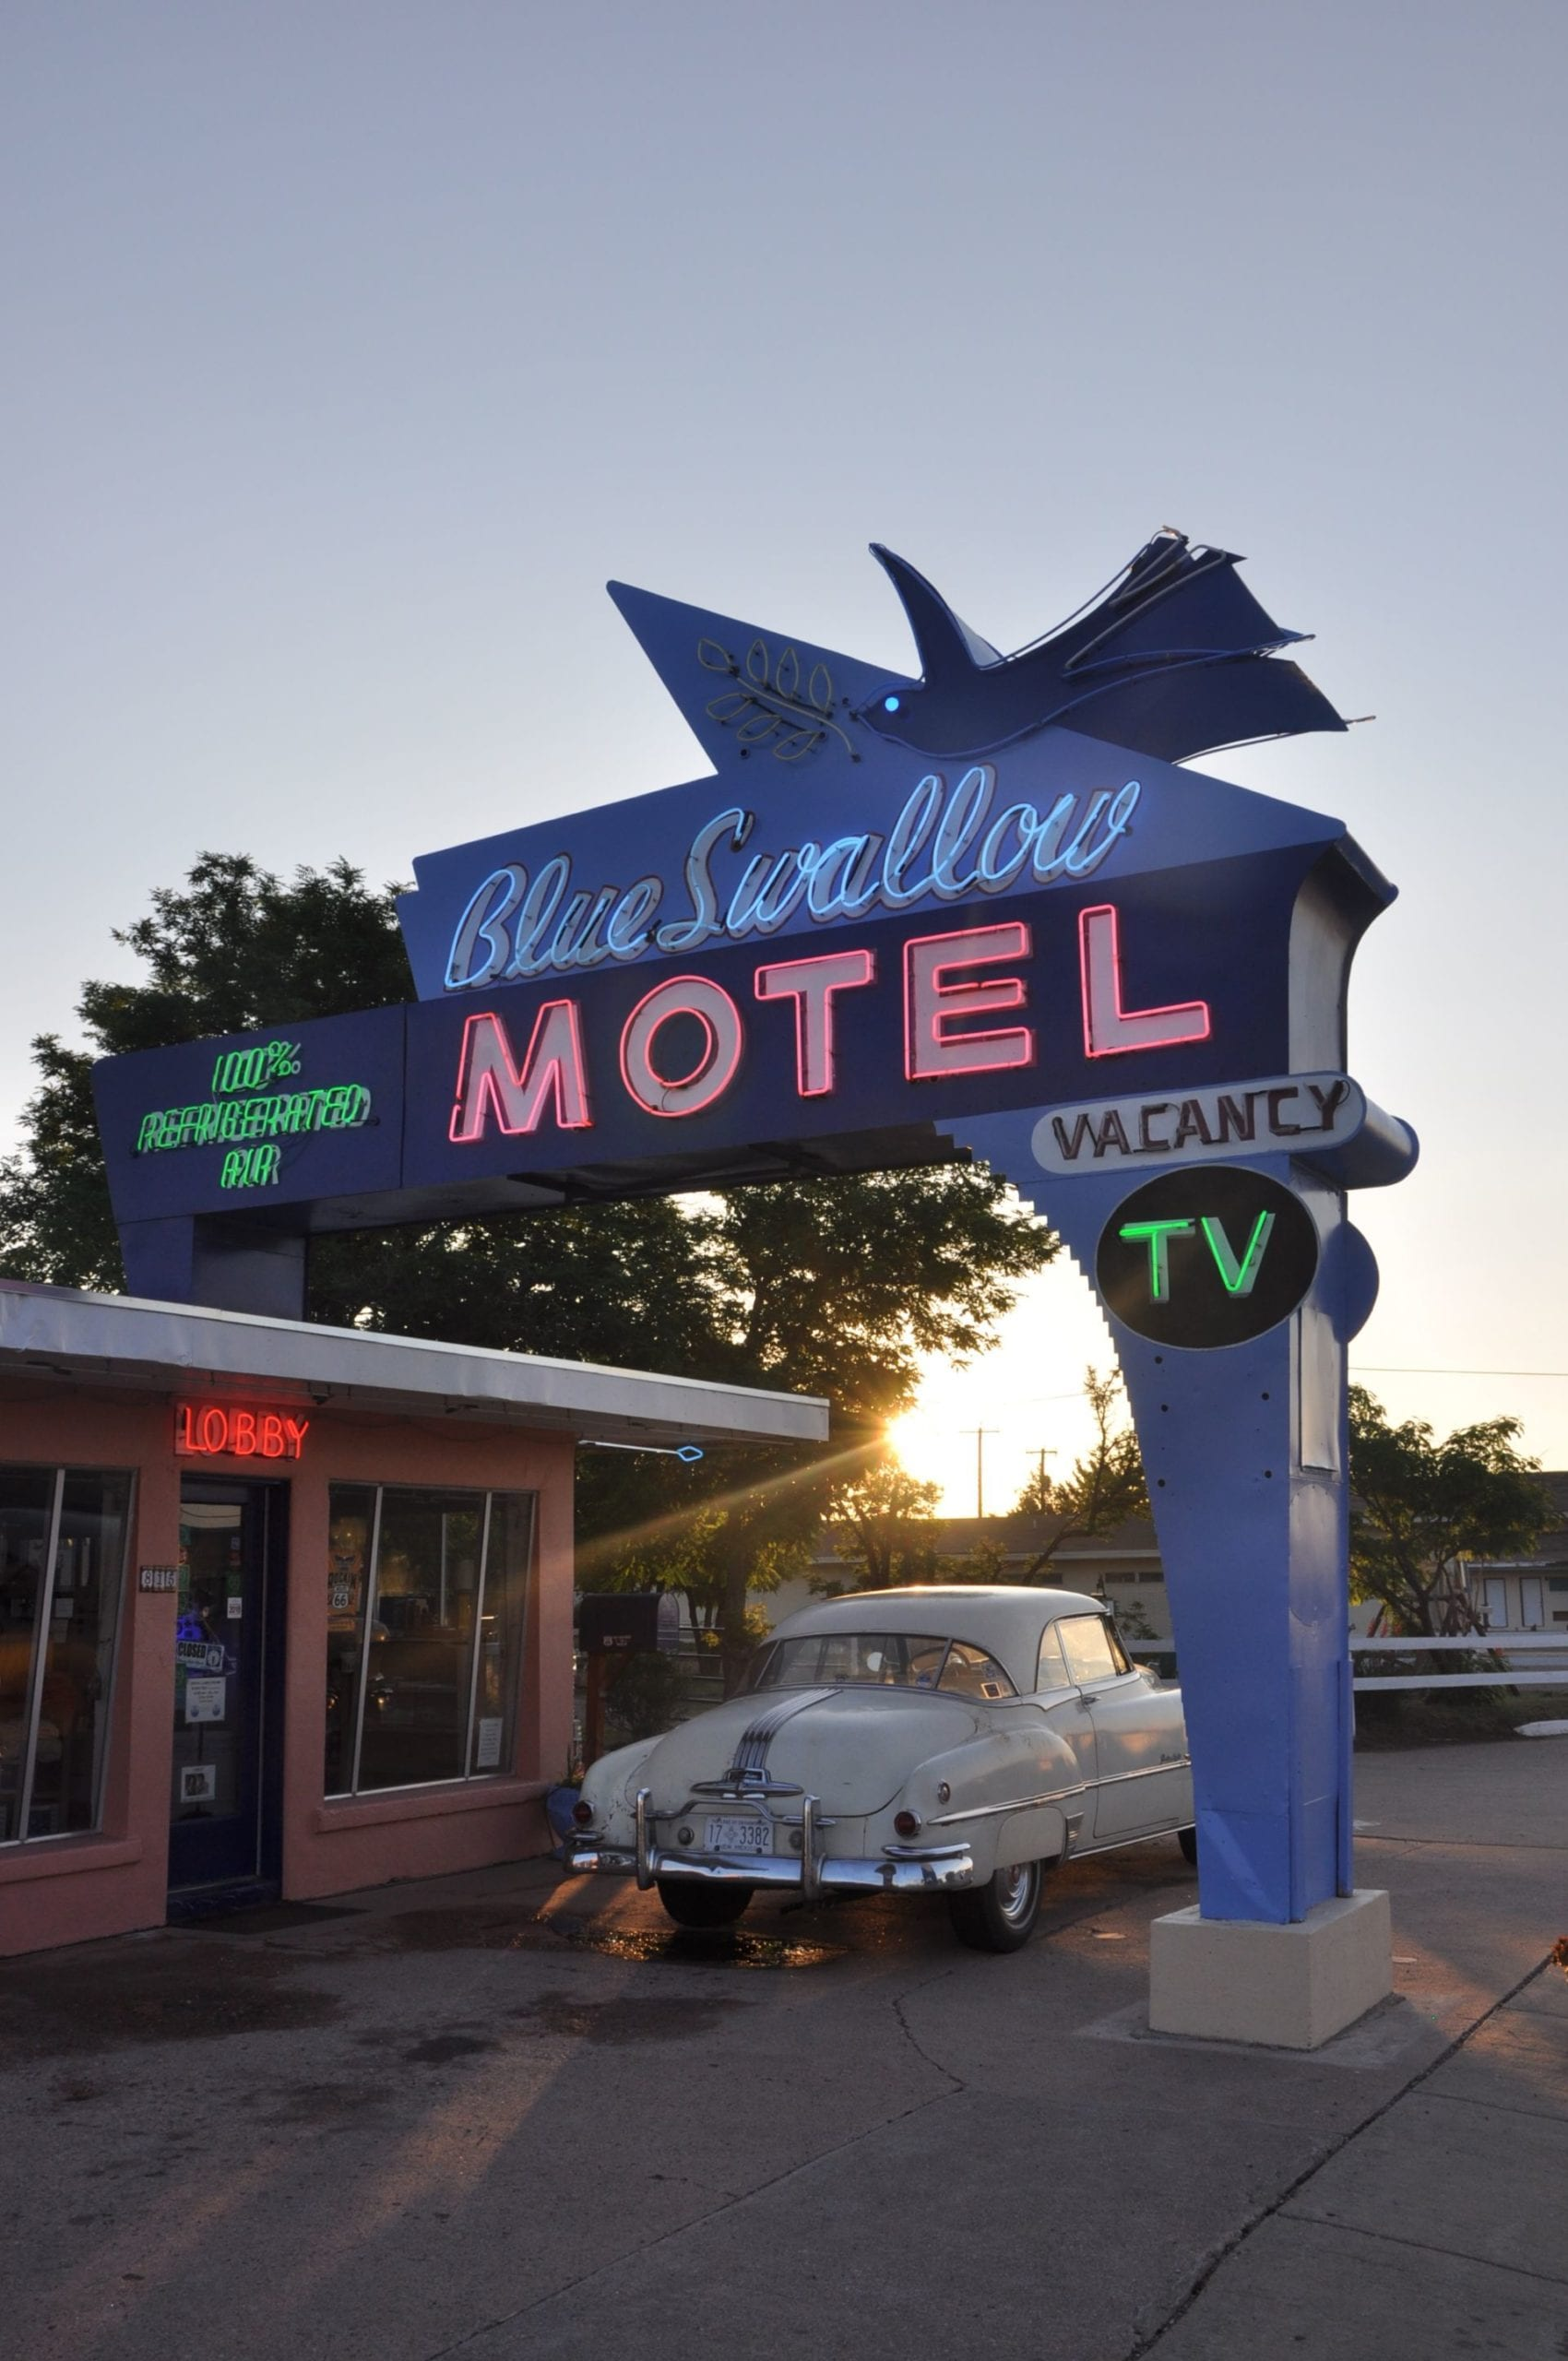 Route 66 Hotel Blue Swallow